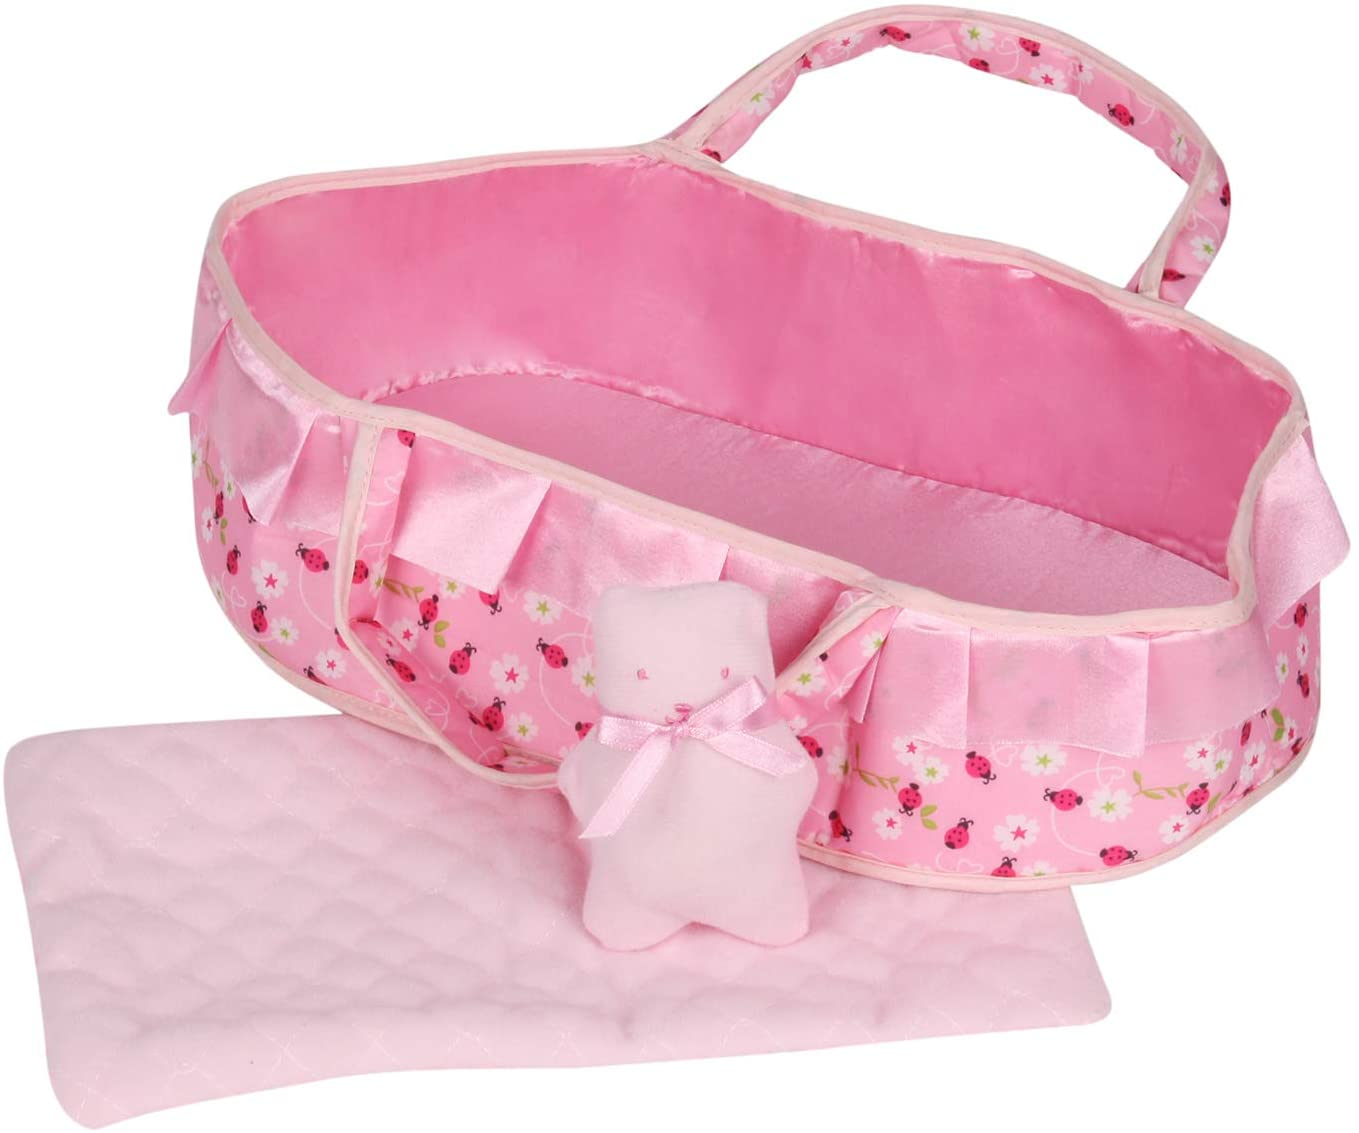 Huang Cheng Toys Lovely Baby Doll Cradle Blanket for 12-inch Doll Carrier Pretend Play Toy